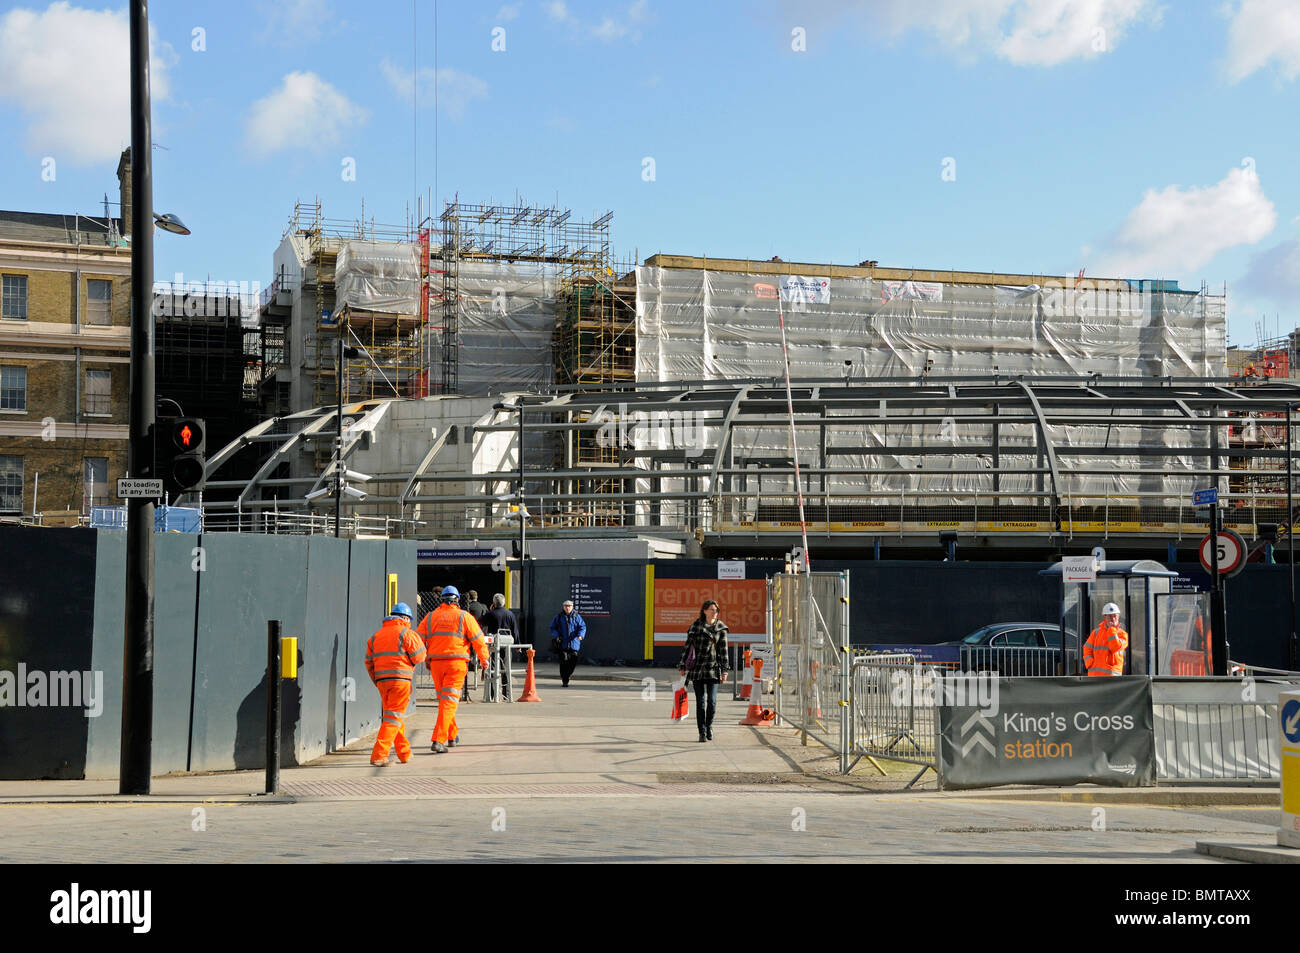 Construction work in progress at Kings Cross Station Stock Photo